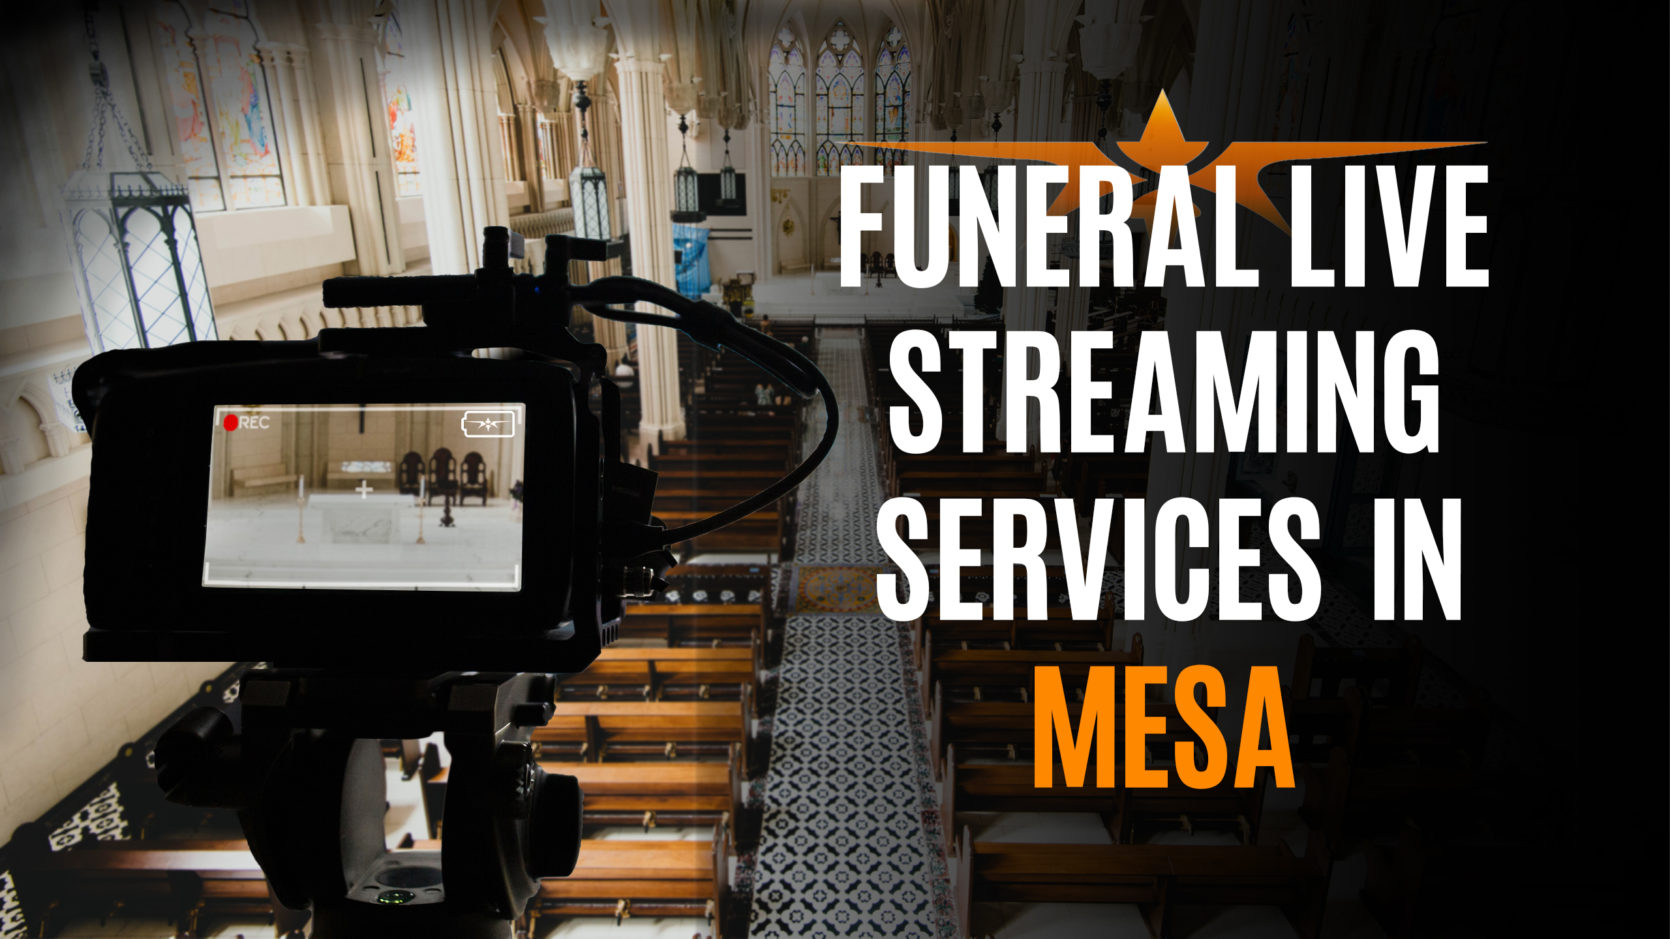 Funeral Live Streaming Services in Mesa